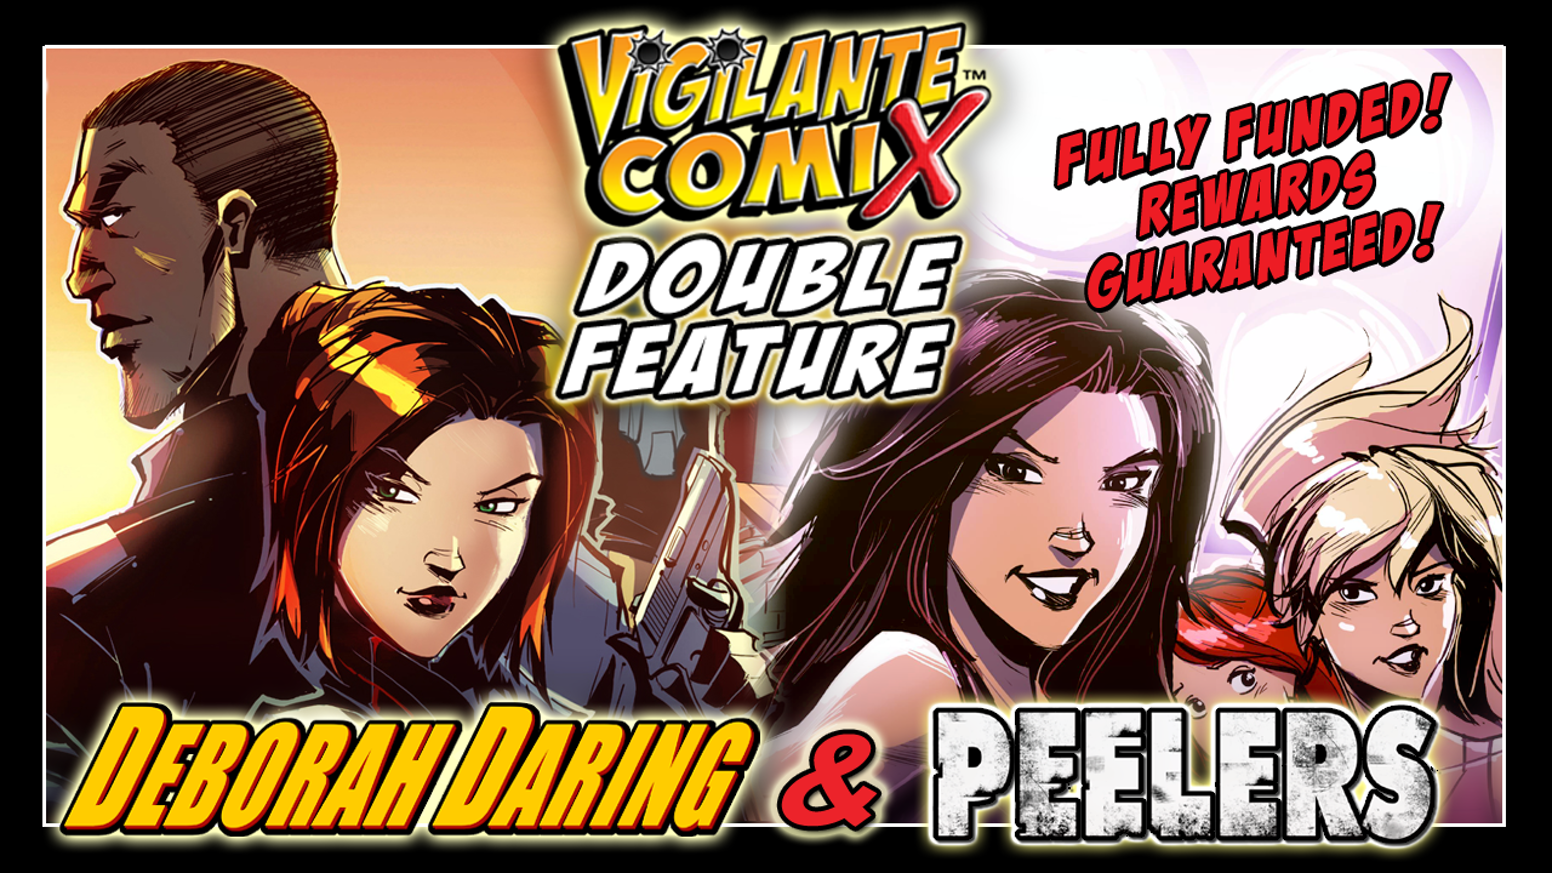 Vigilante Comix presents a double feature of Deborah Daring #3: 'Russian Face-Off' and Peelers #1: 'Dark Days Ahead'.  DOUBLE THE FUN! Available now at our eStore!